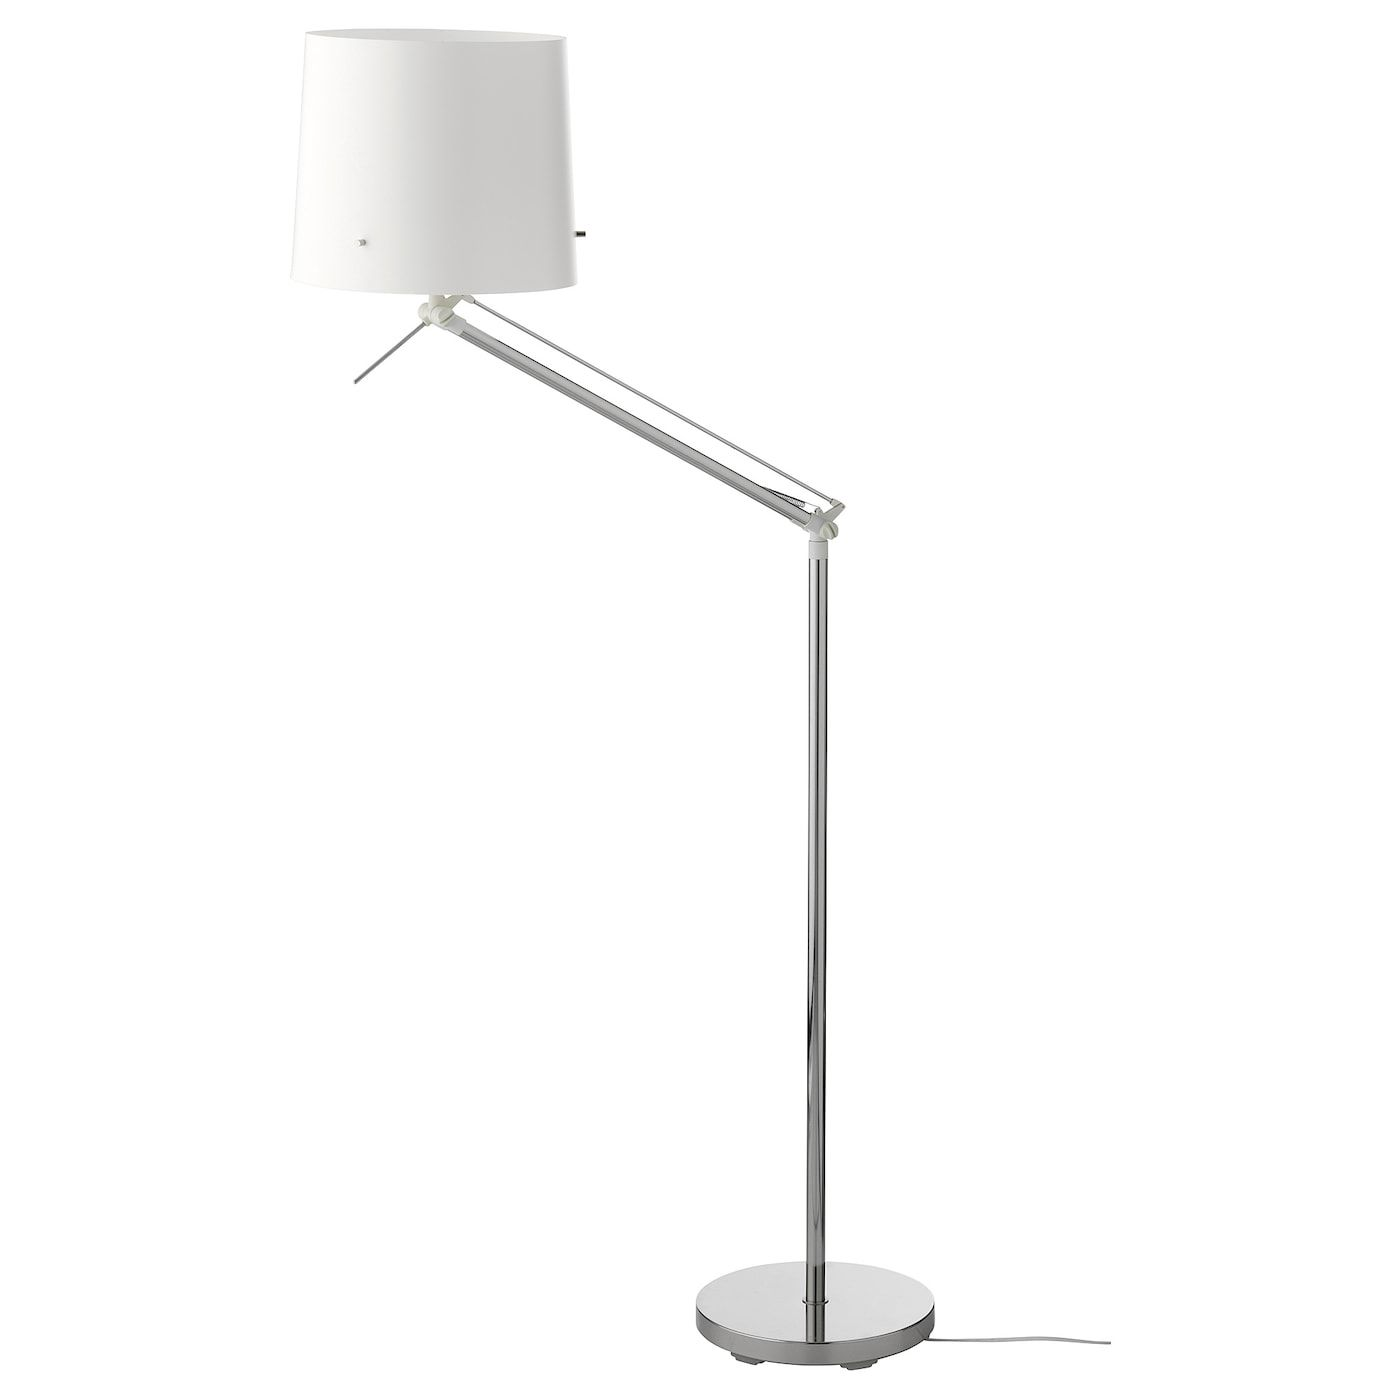 Samtid Floor Reading Lamp Nickel Plated White In 2020 White Floor Lamp Floor Lamp Arc Floor Lamps